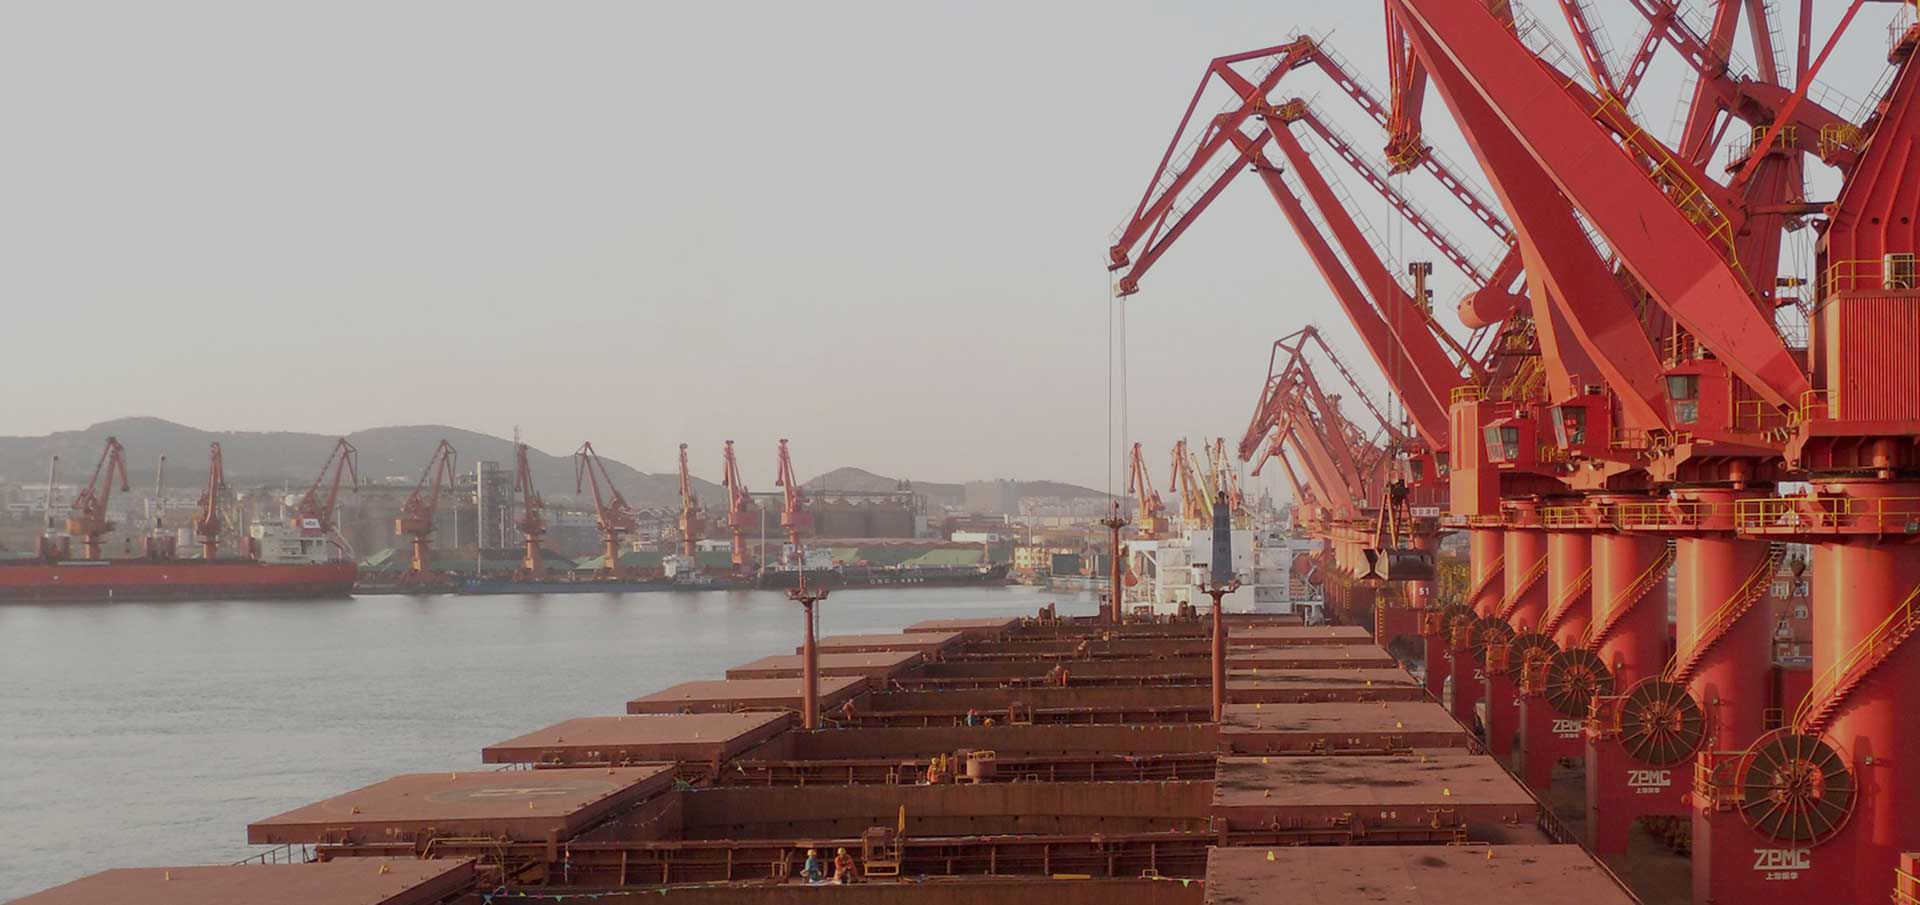 Capesize ships at Lanshan Port